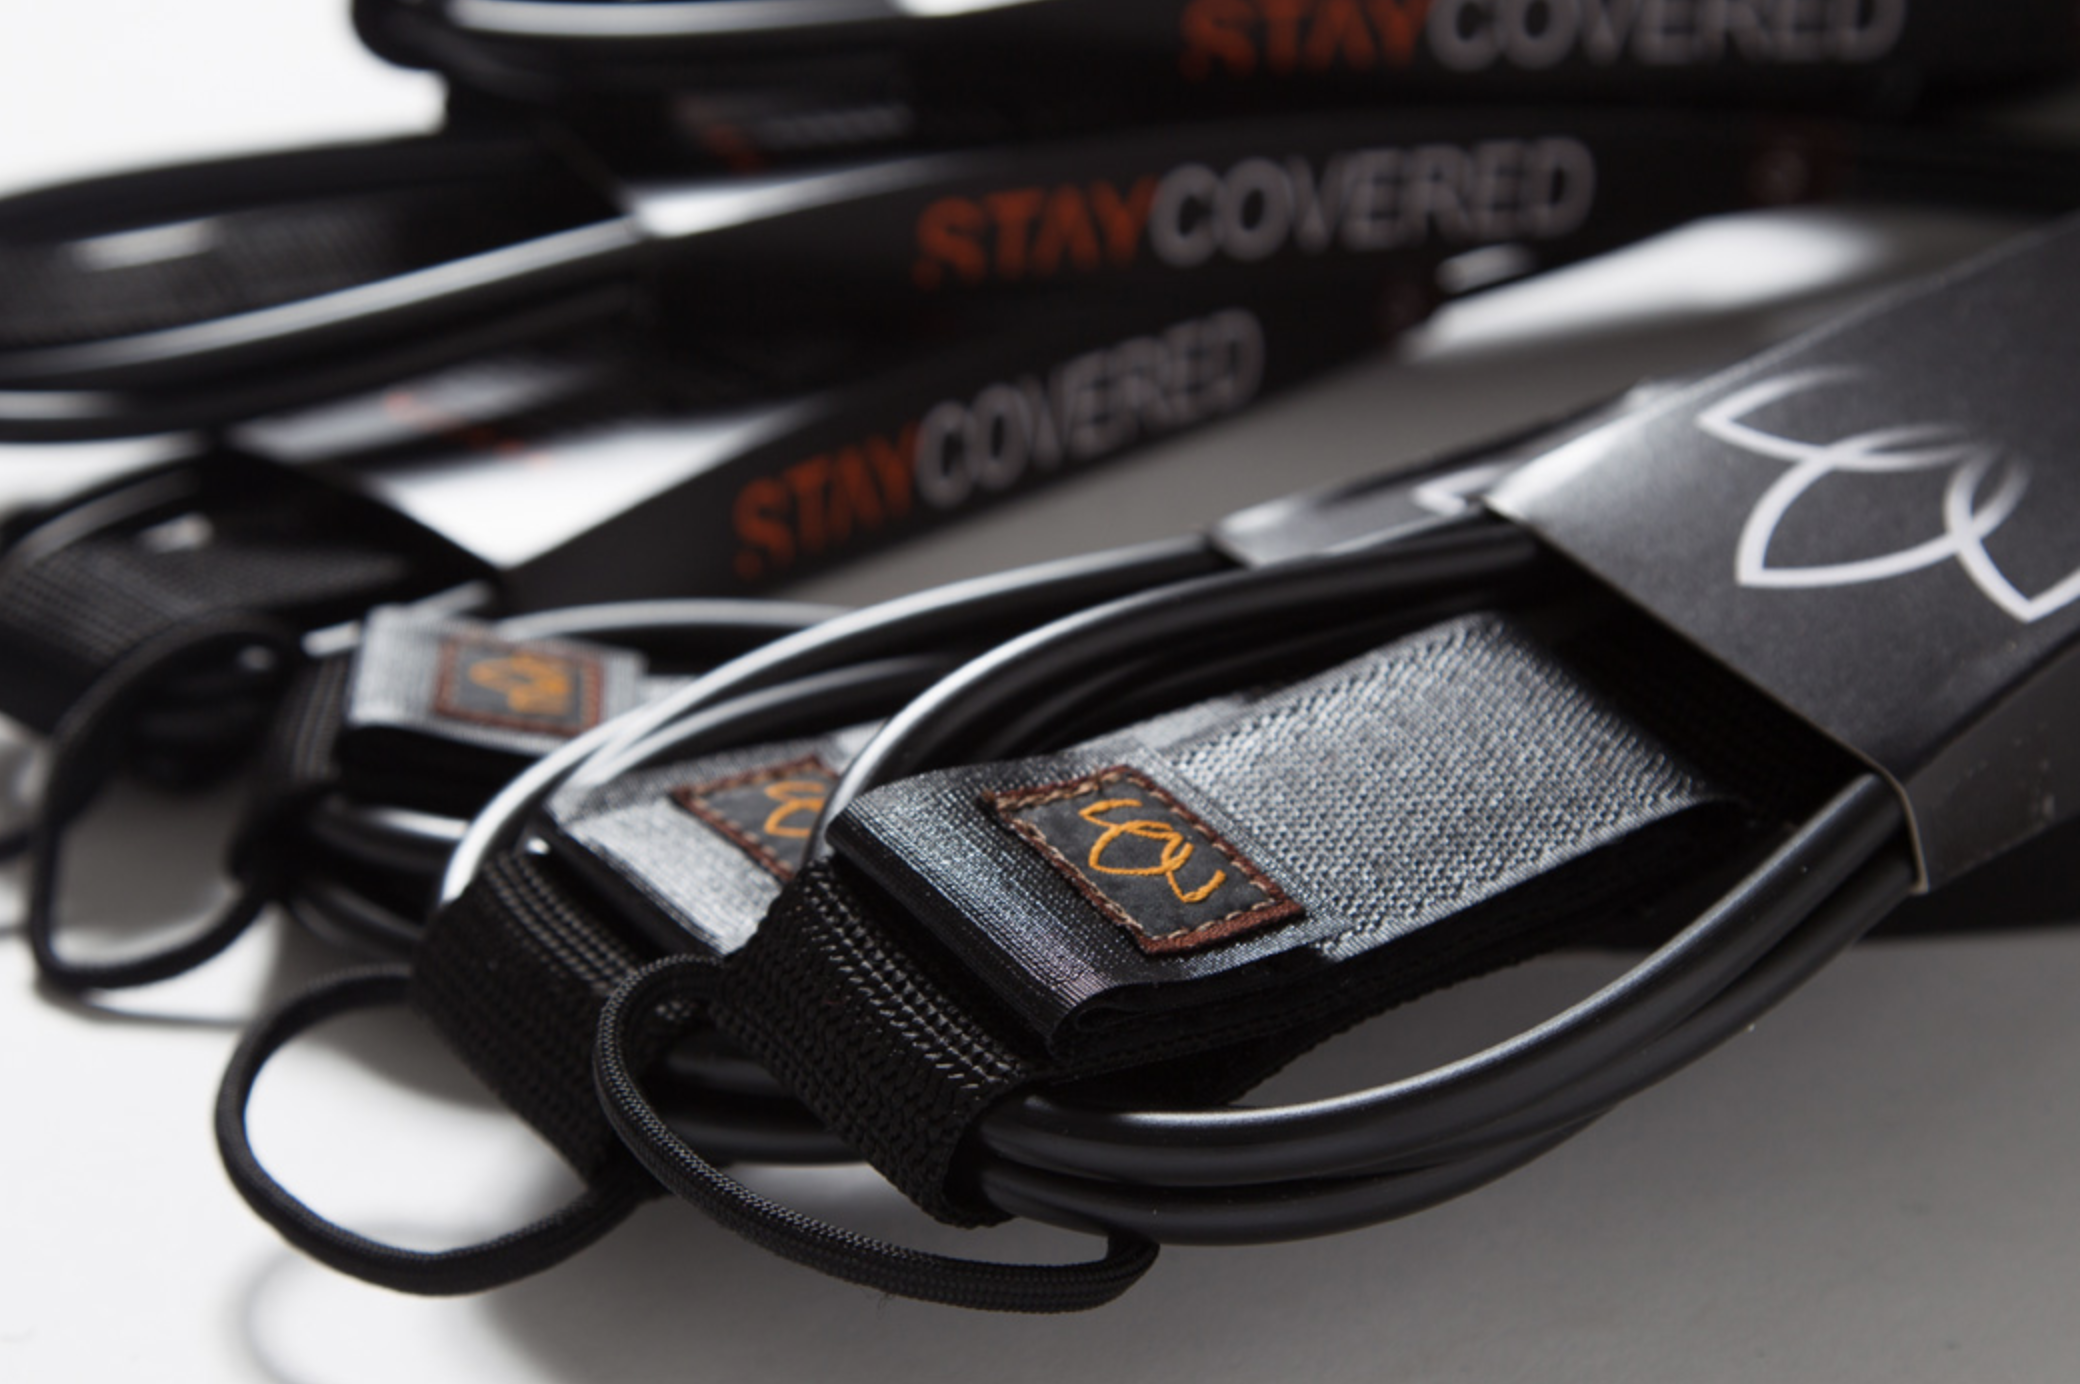 [STAY COVERED] リーシュ 6ft STANDARD mat black